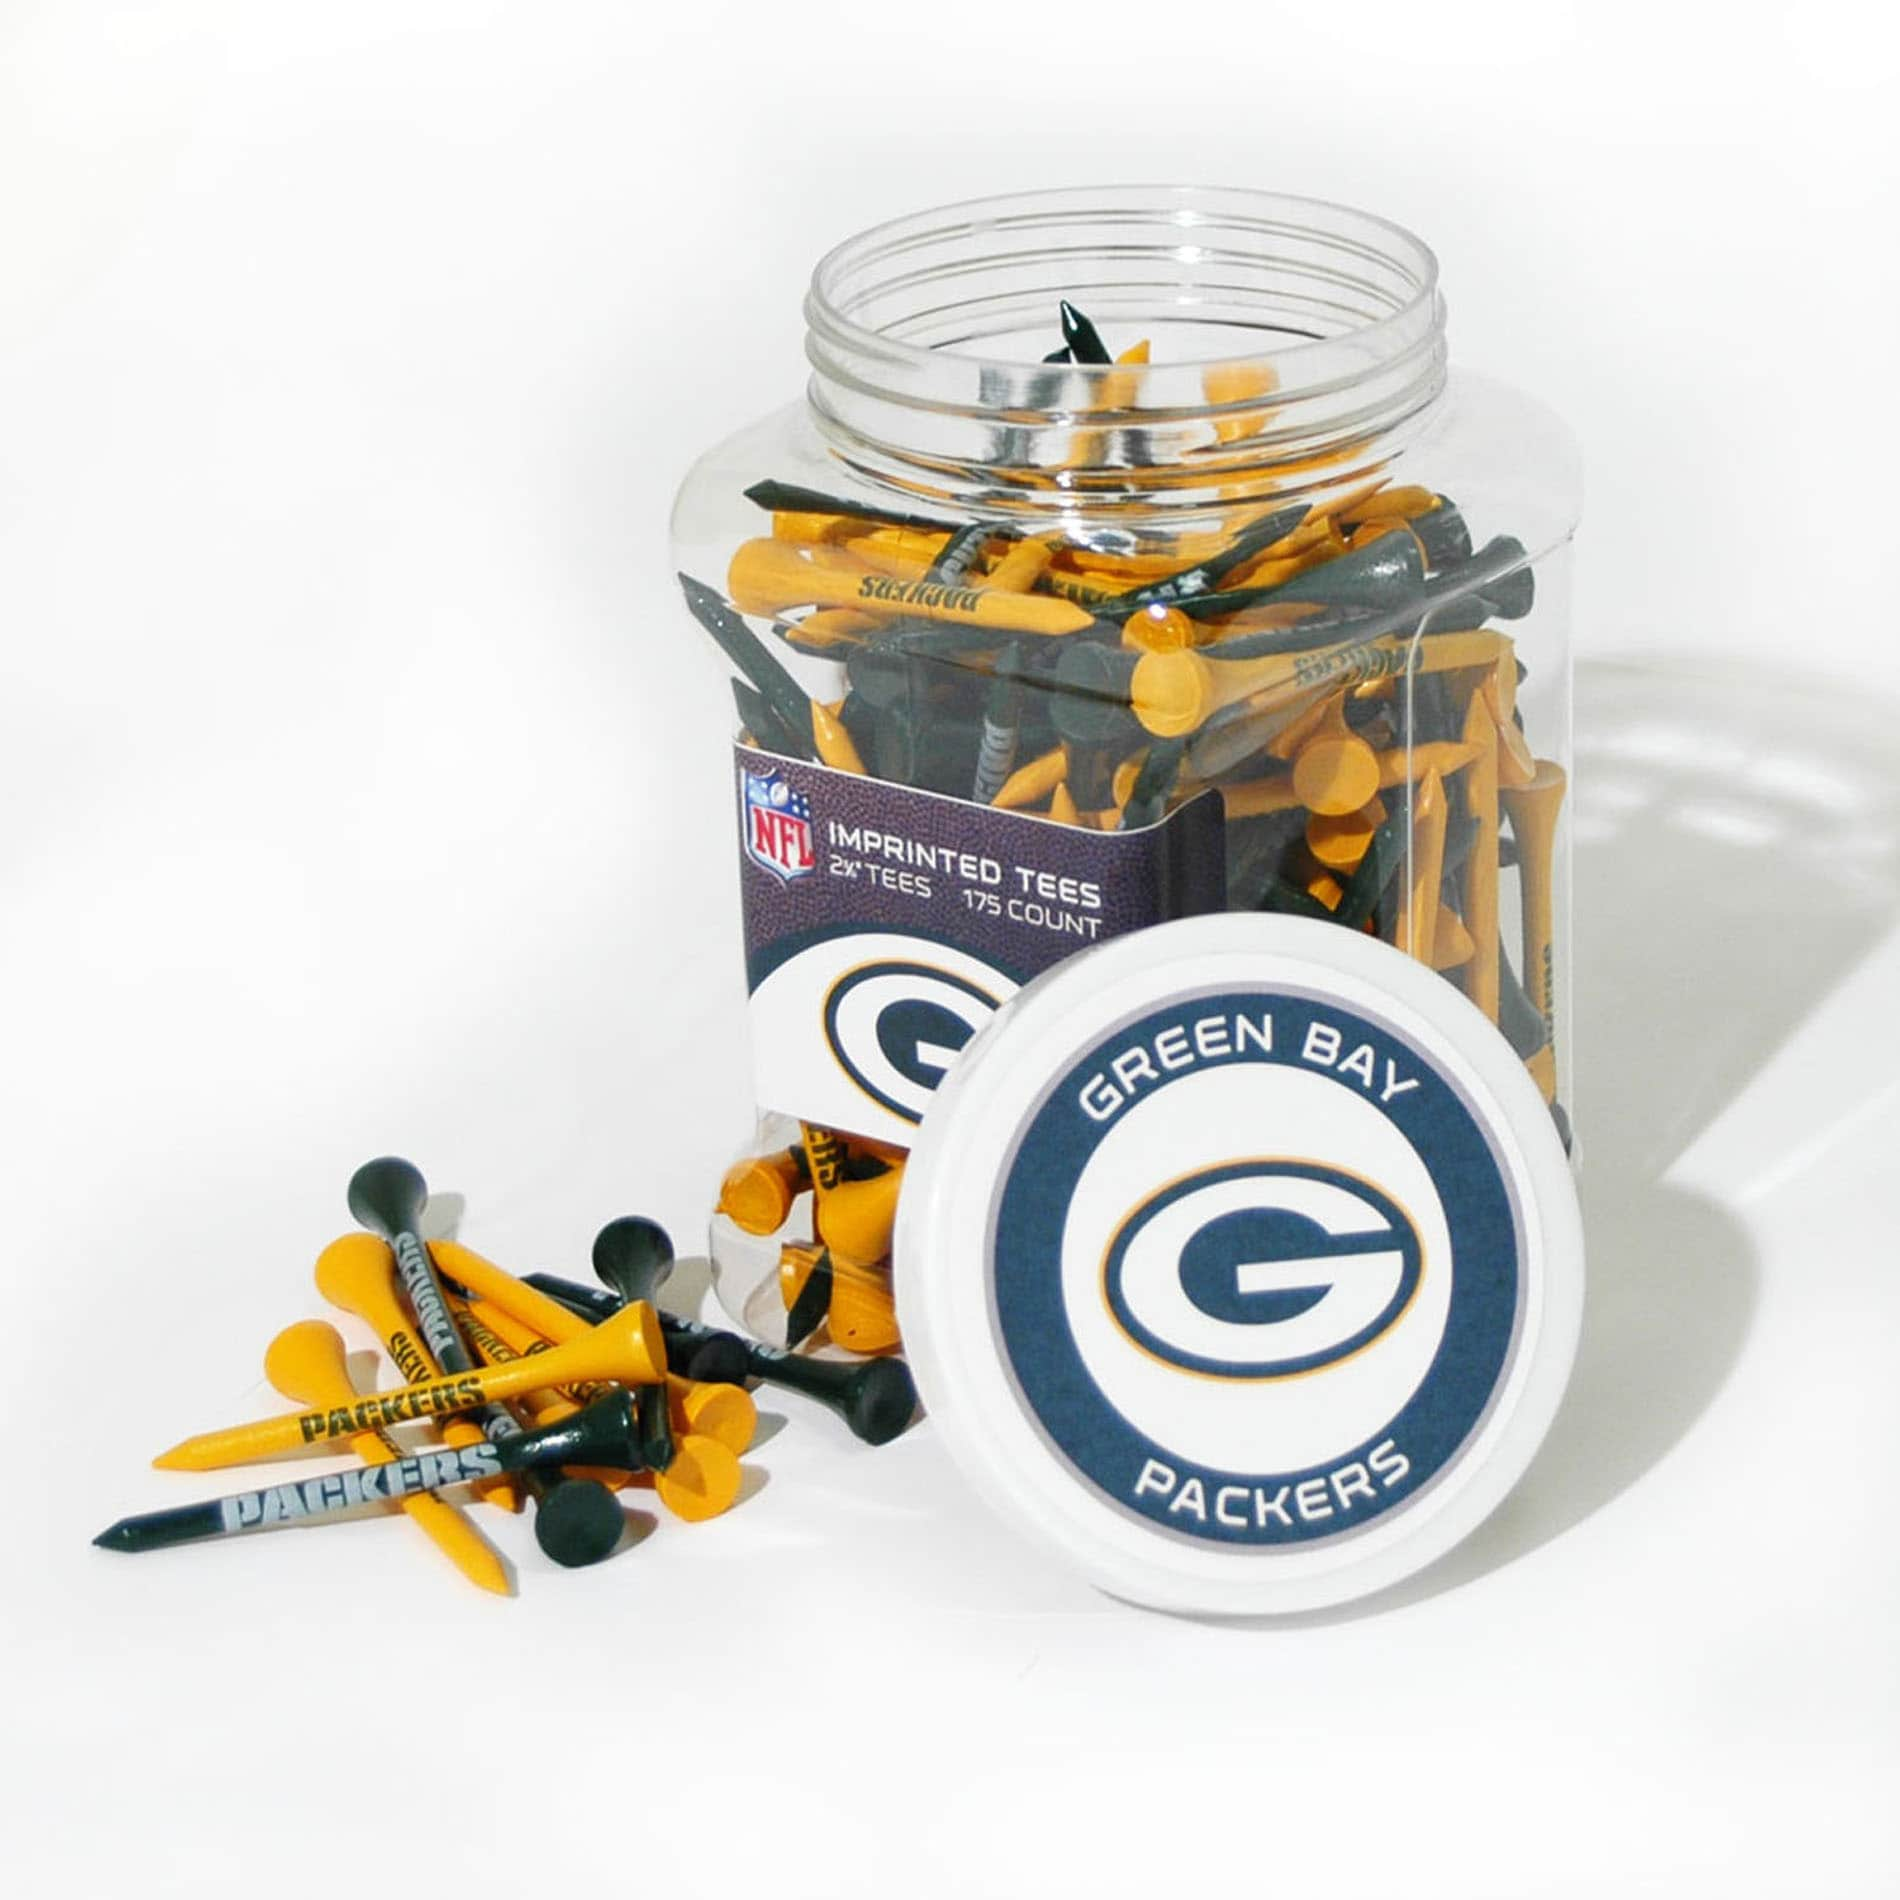 Green Bay Packers 175 Tee Jar